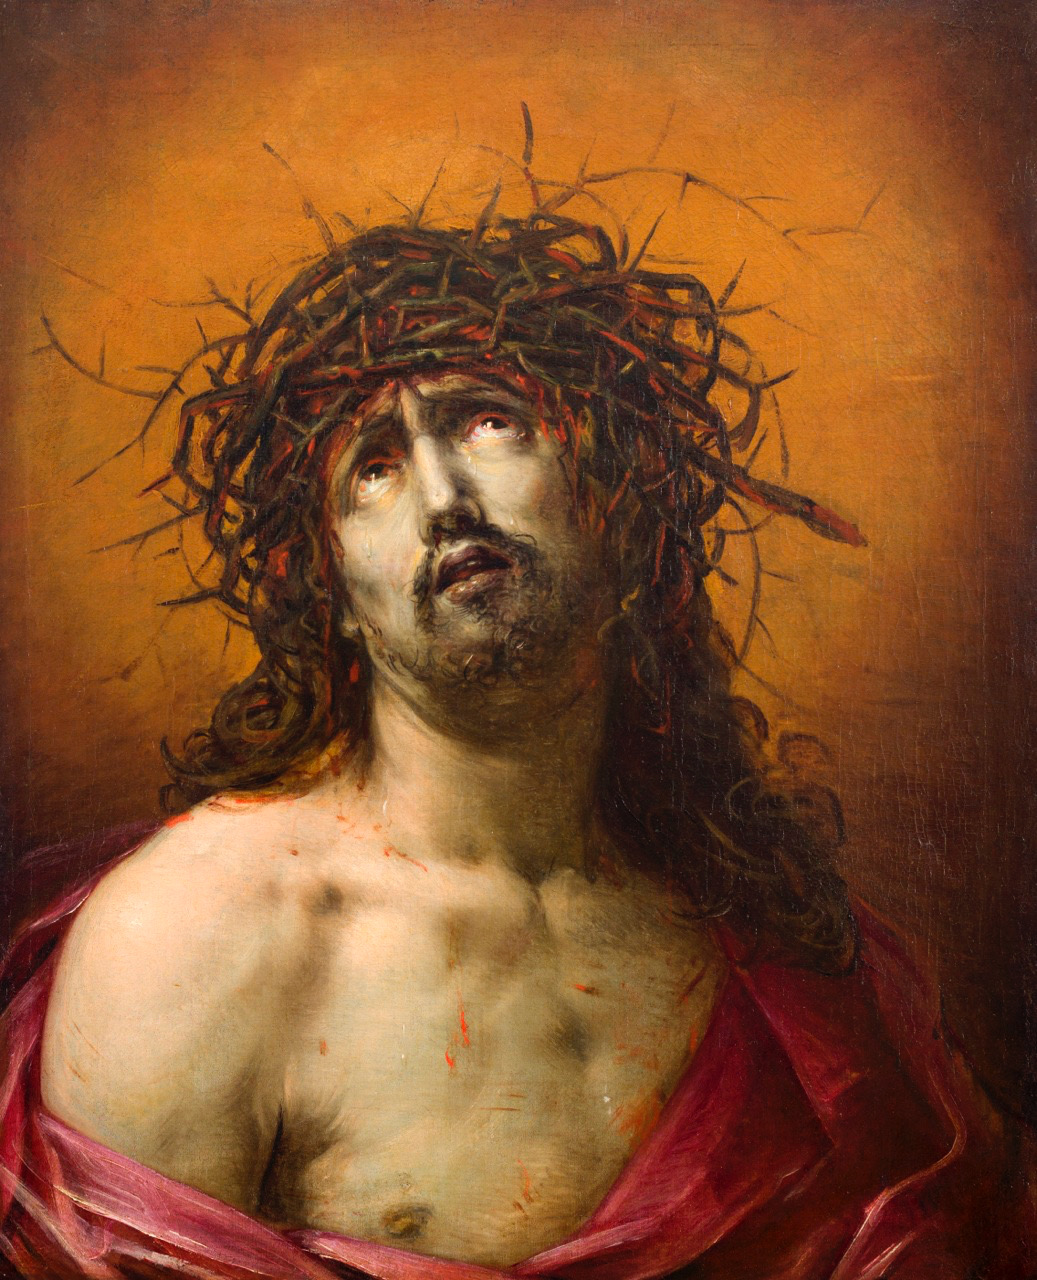 Mateo Cerezo (1637-1666), Ecce Homo Image courtesy of a private collection.